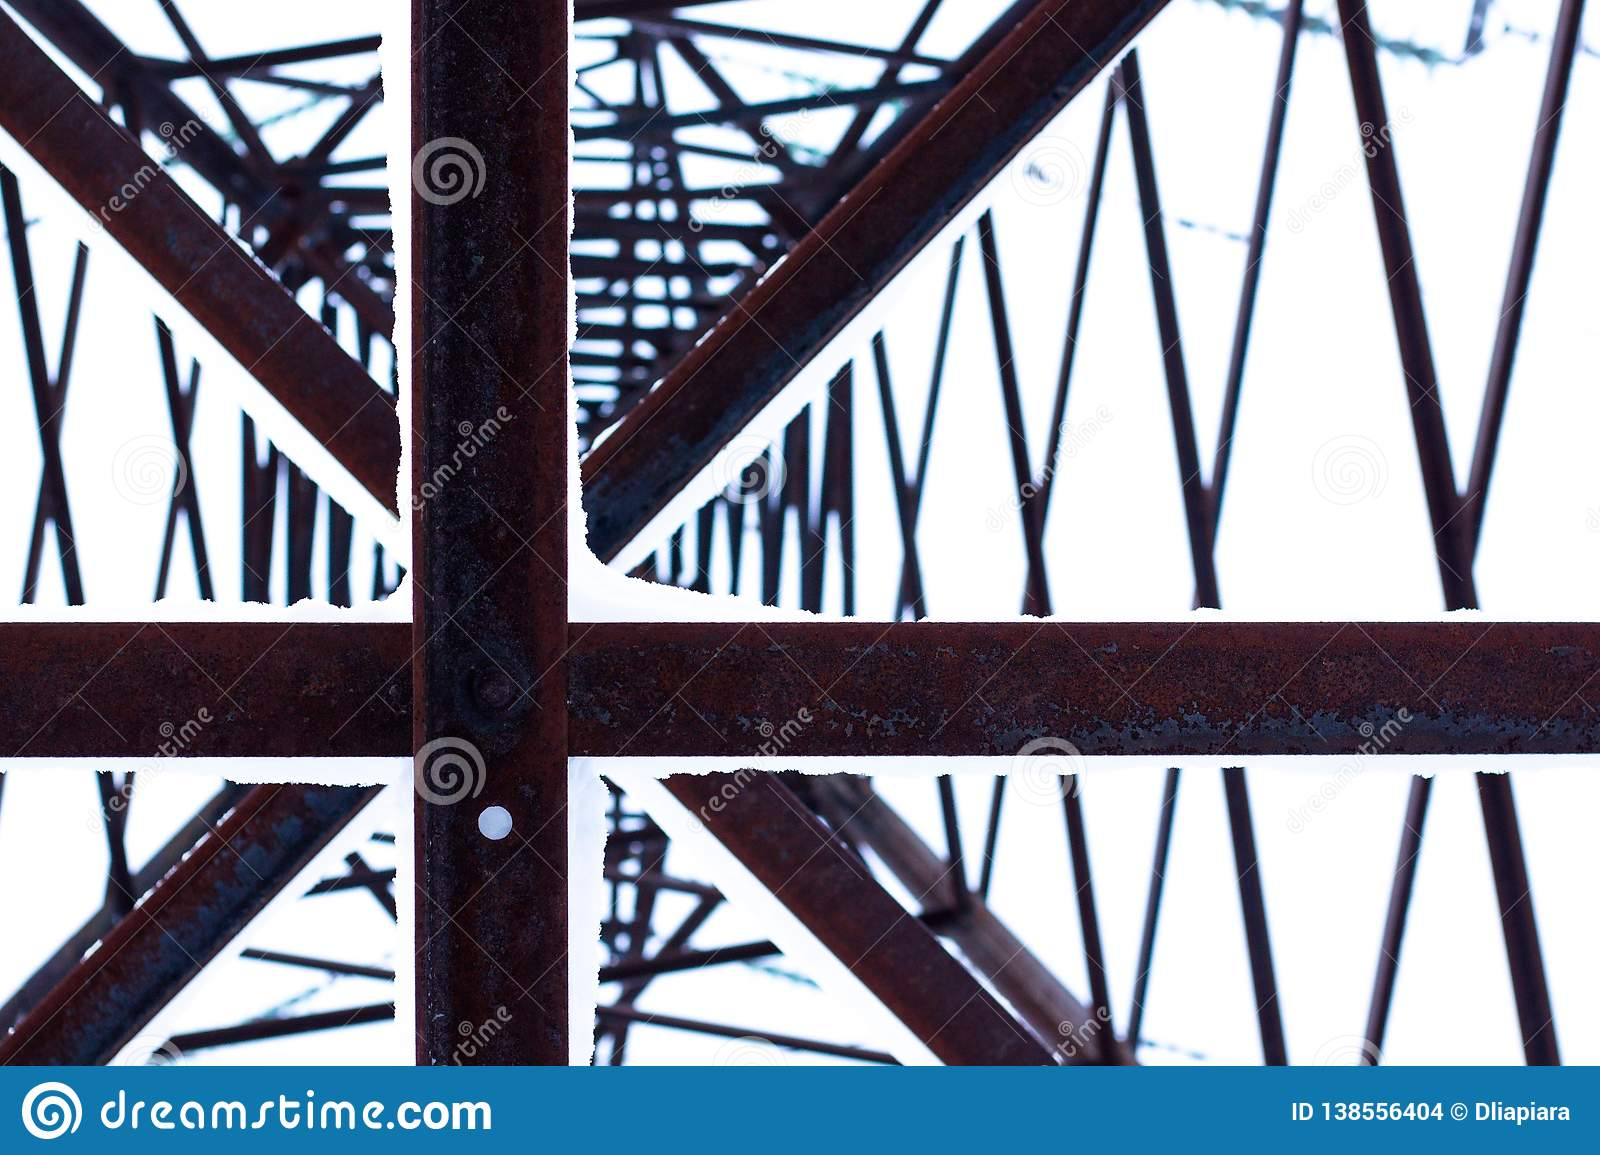 Abstract view of a huge pillar of metal conducting electricity.